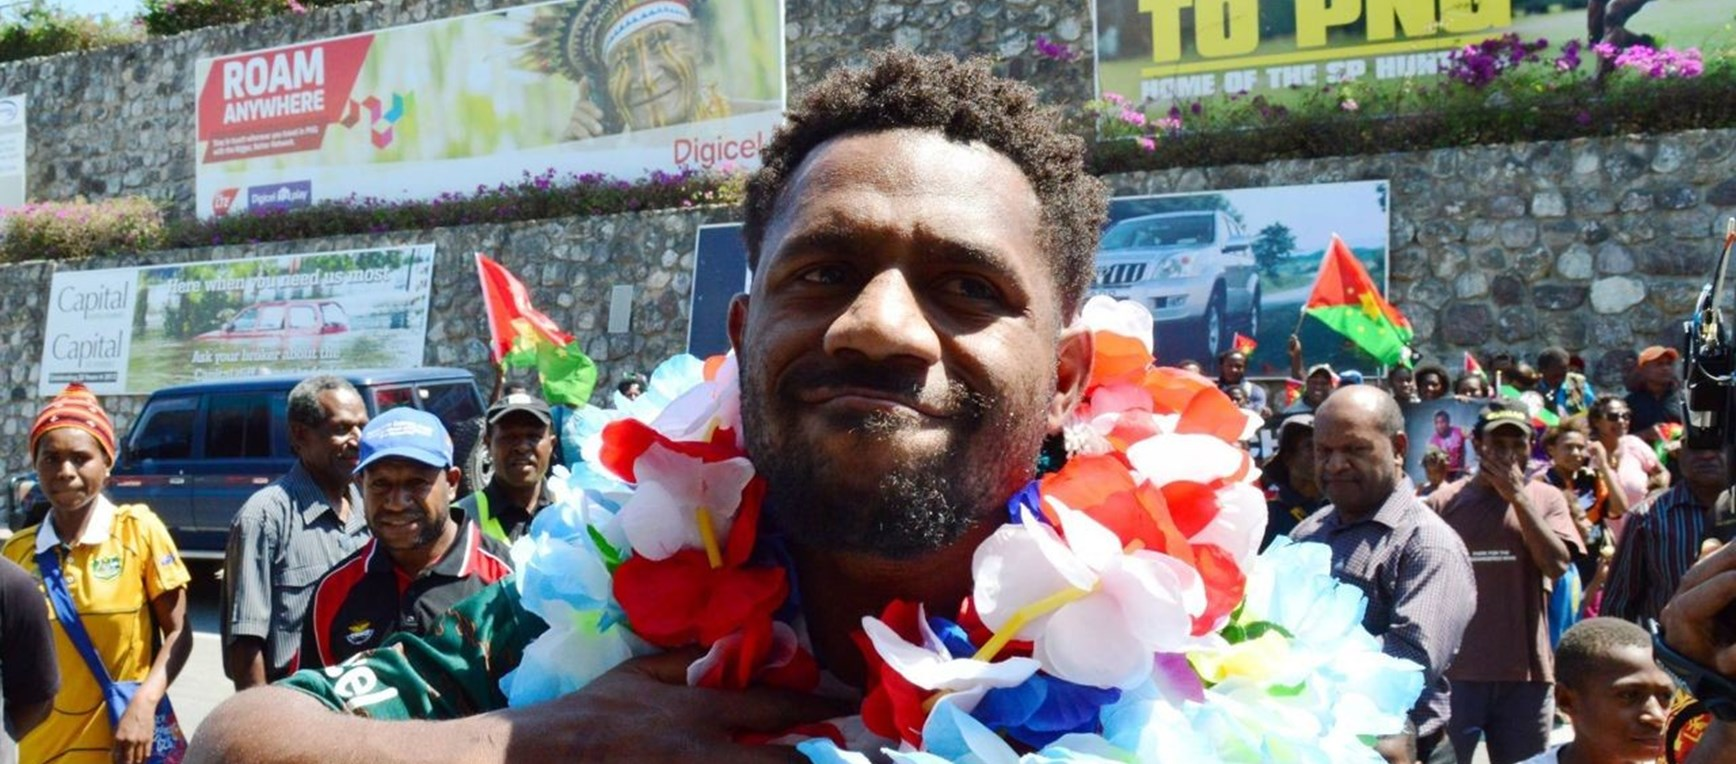 Prime Minister's XIII arrive in PNG